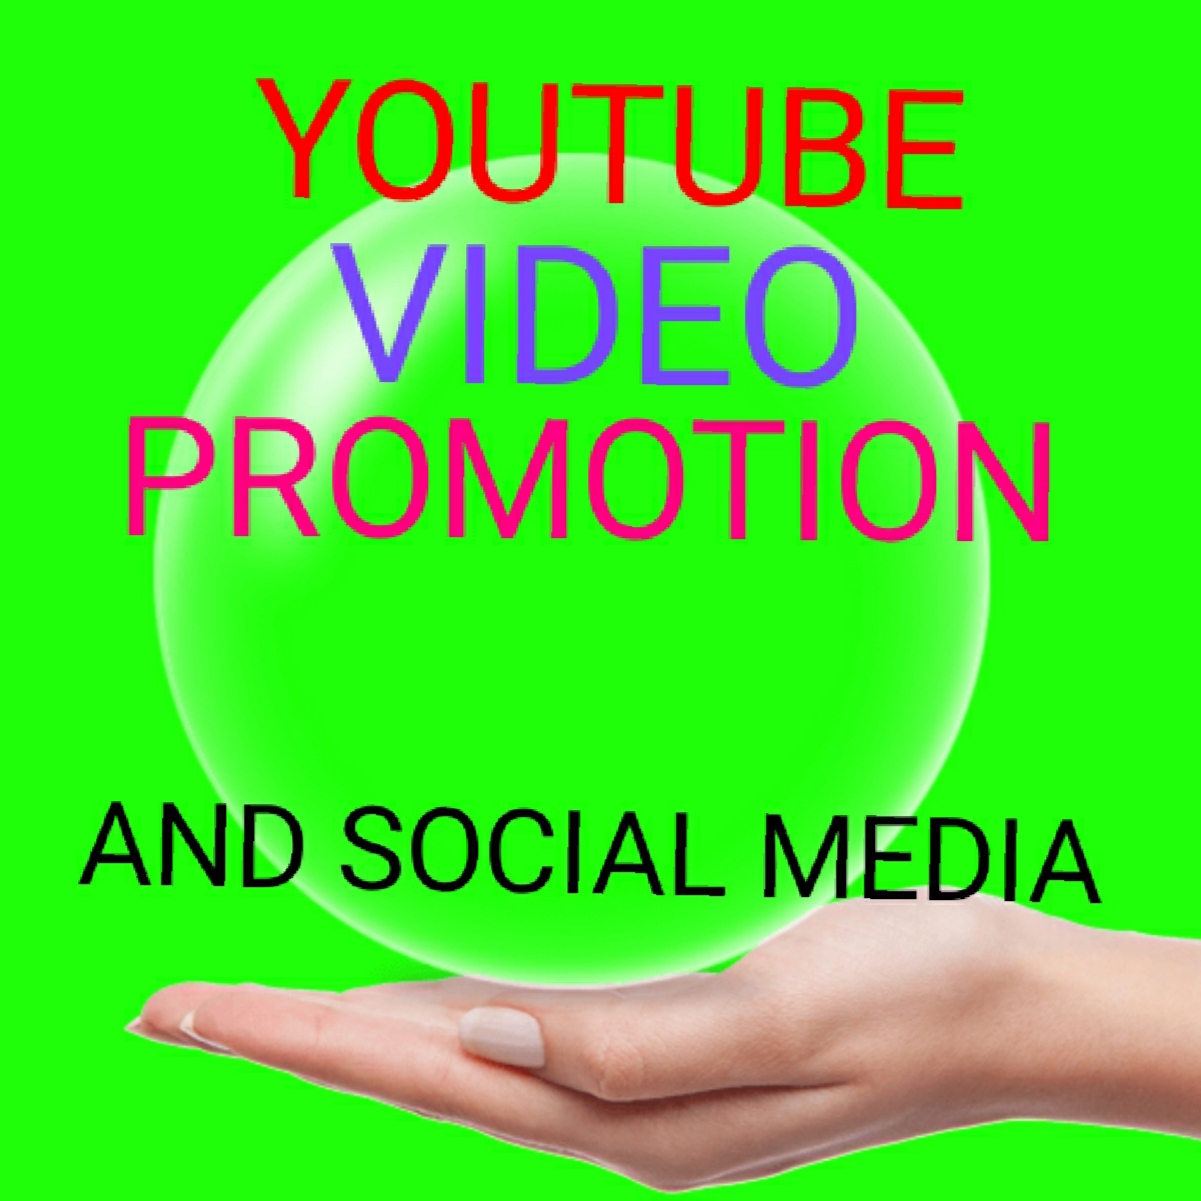 organic video promotion and social media and marketplace